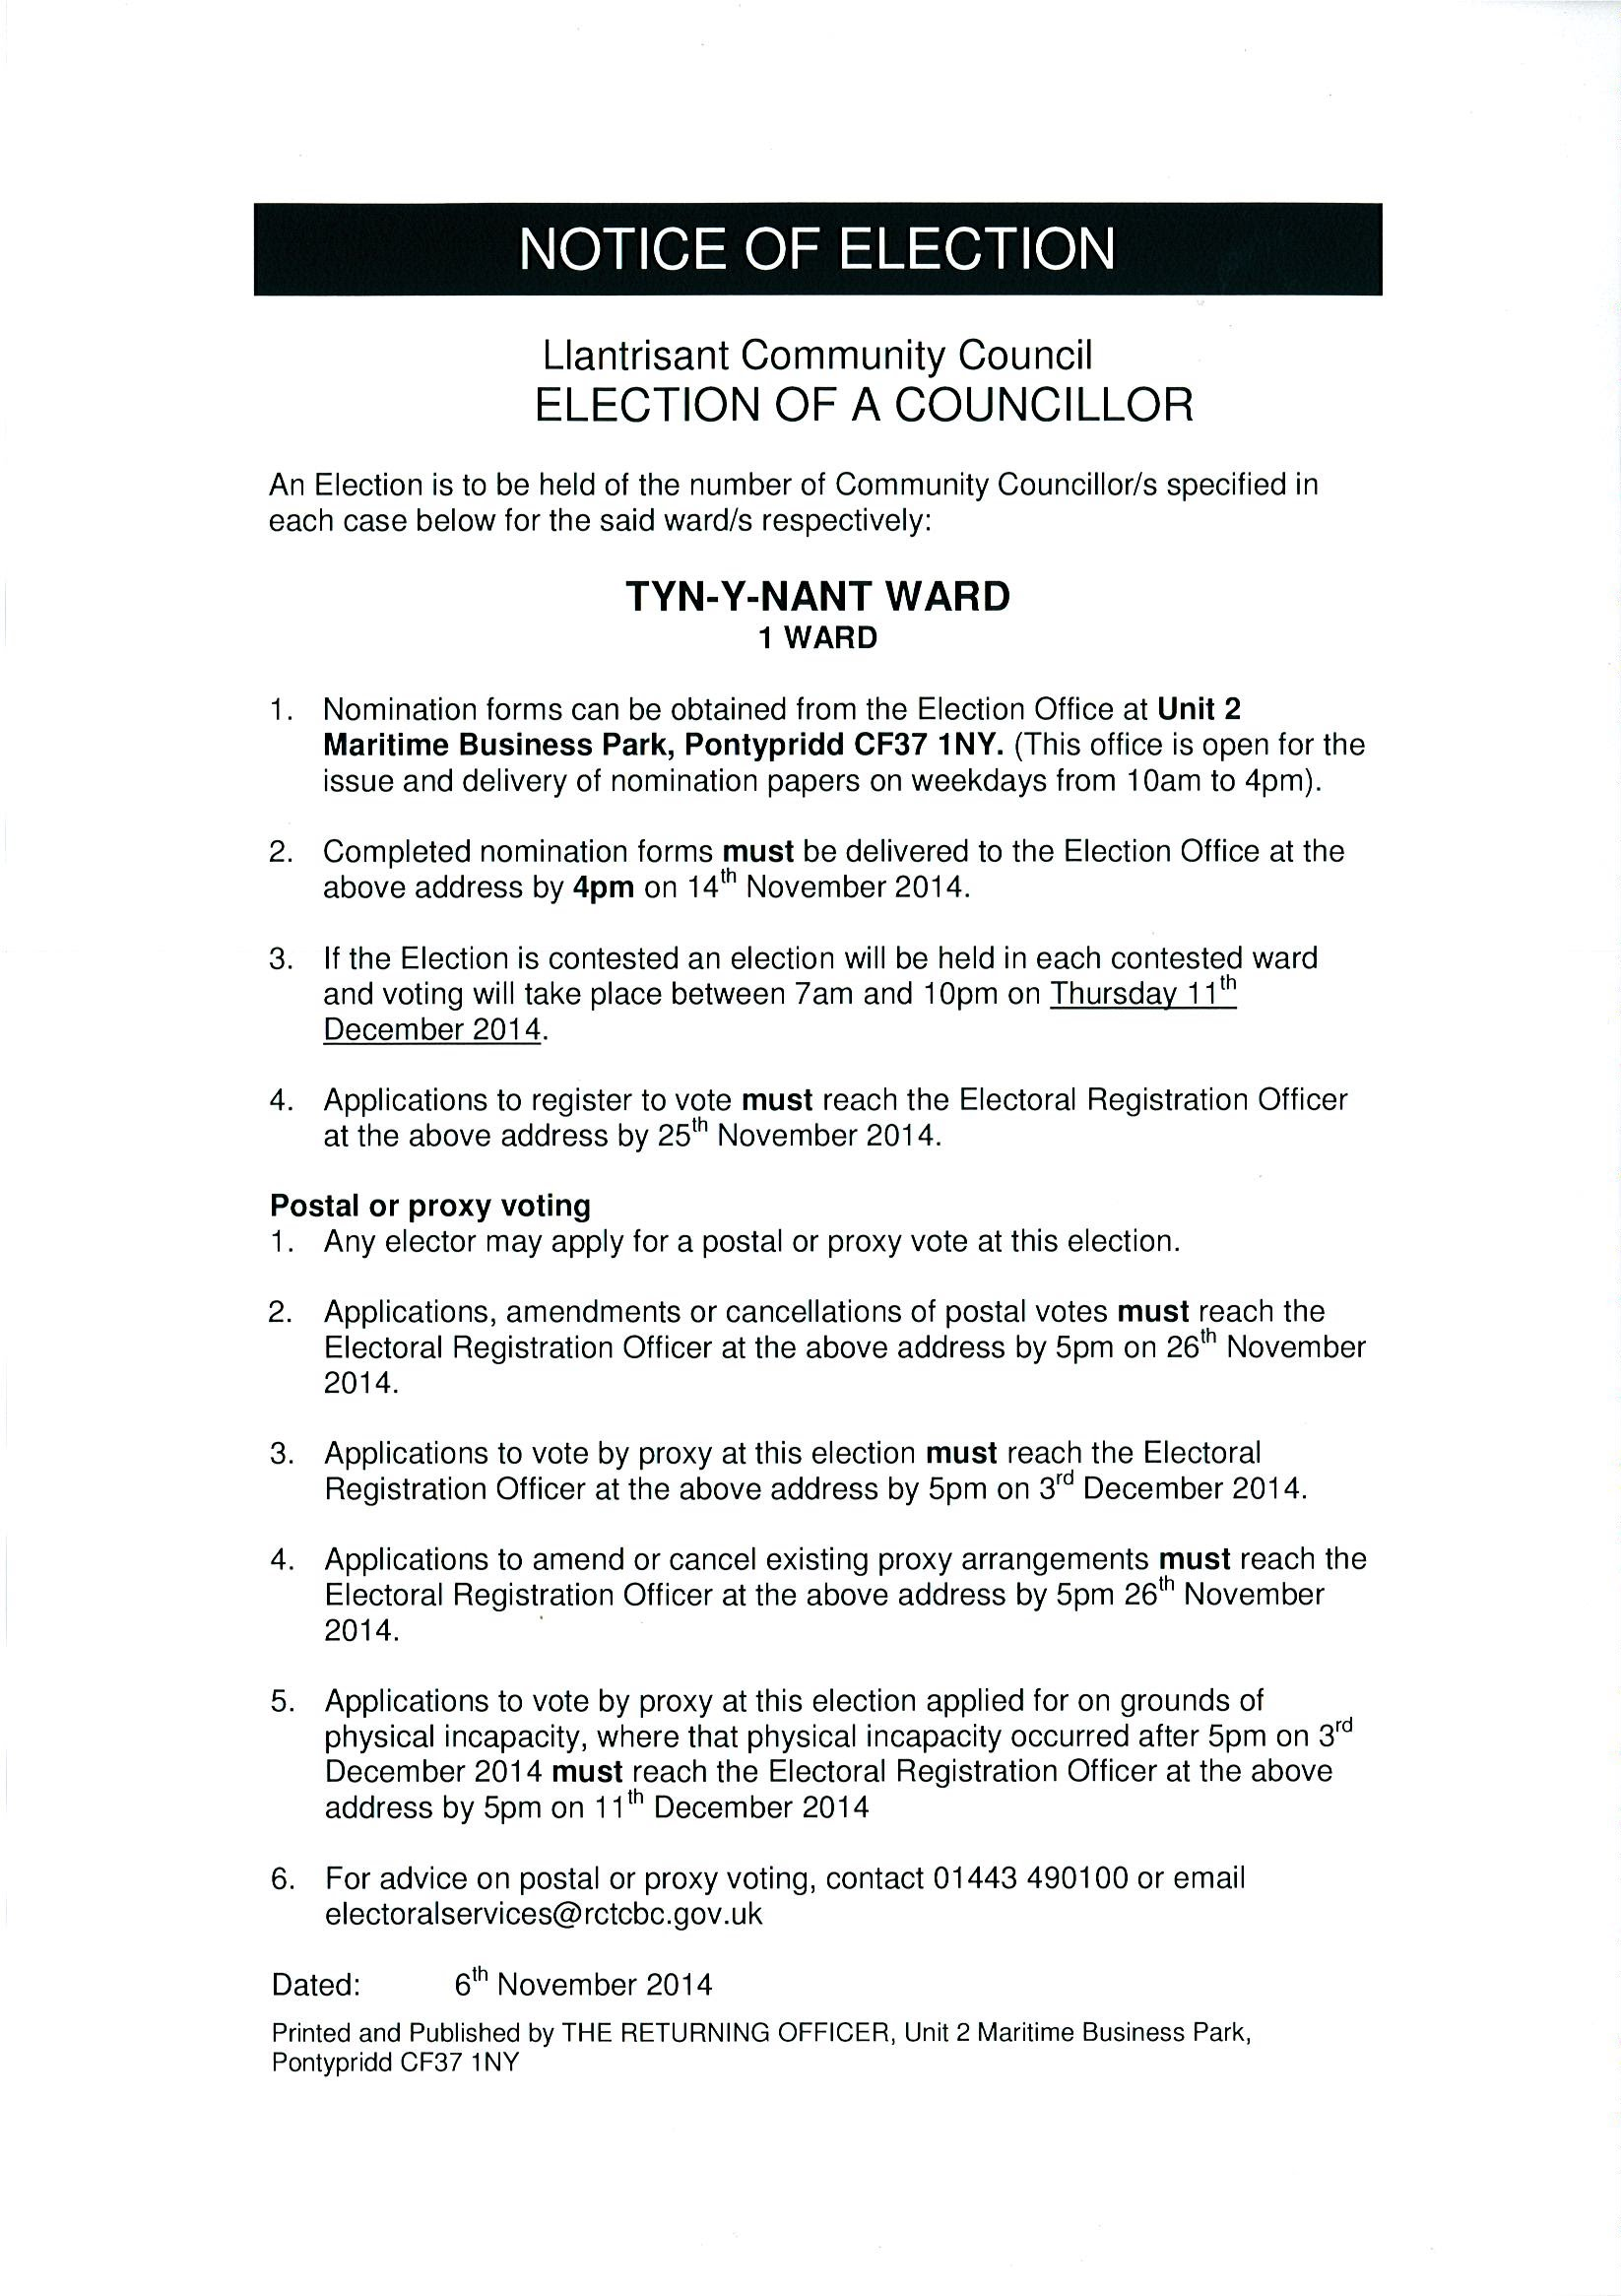 Election for Tynant Ward - Council